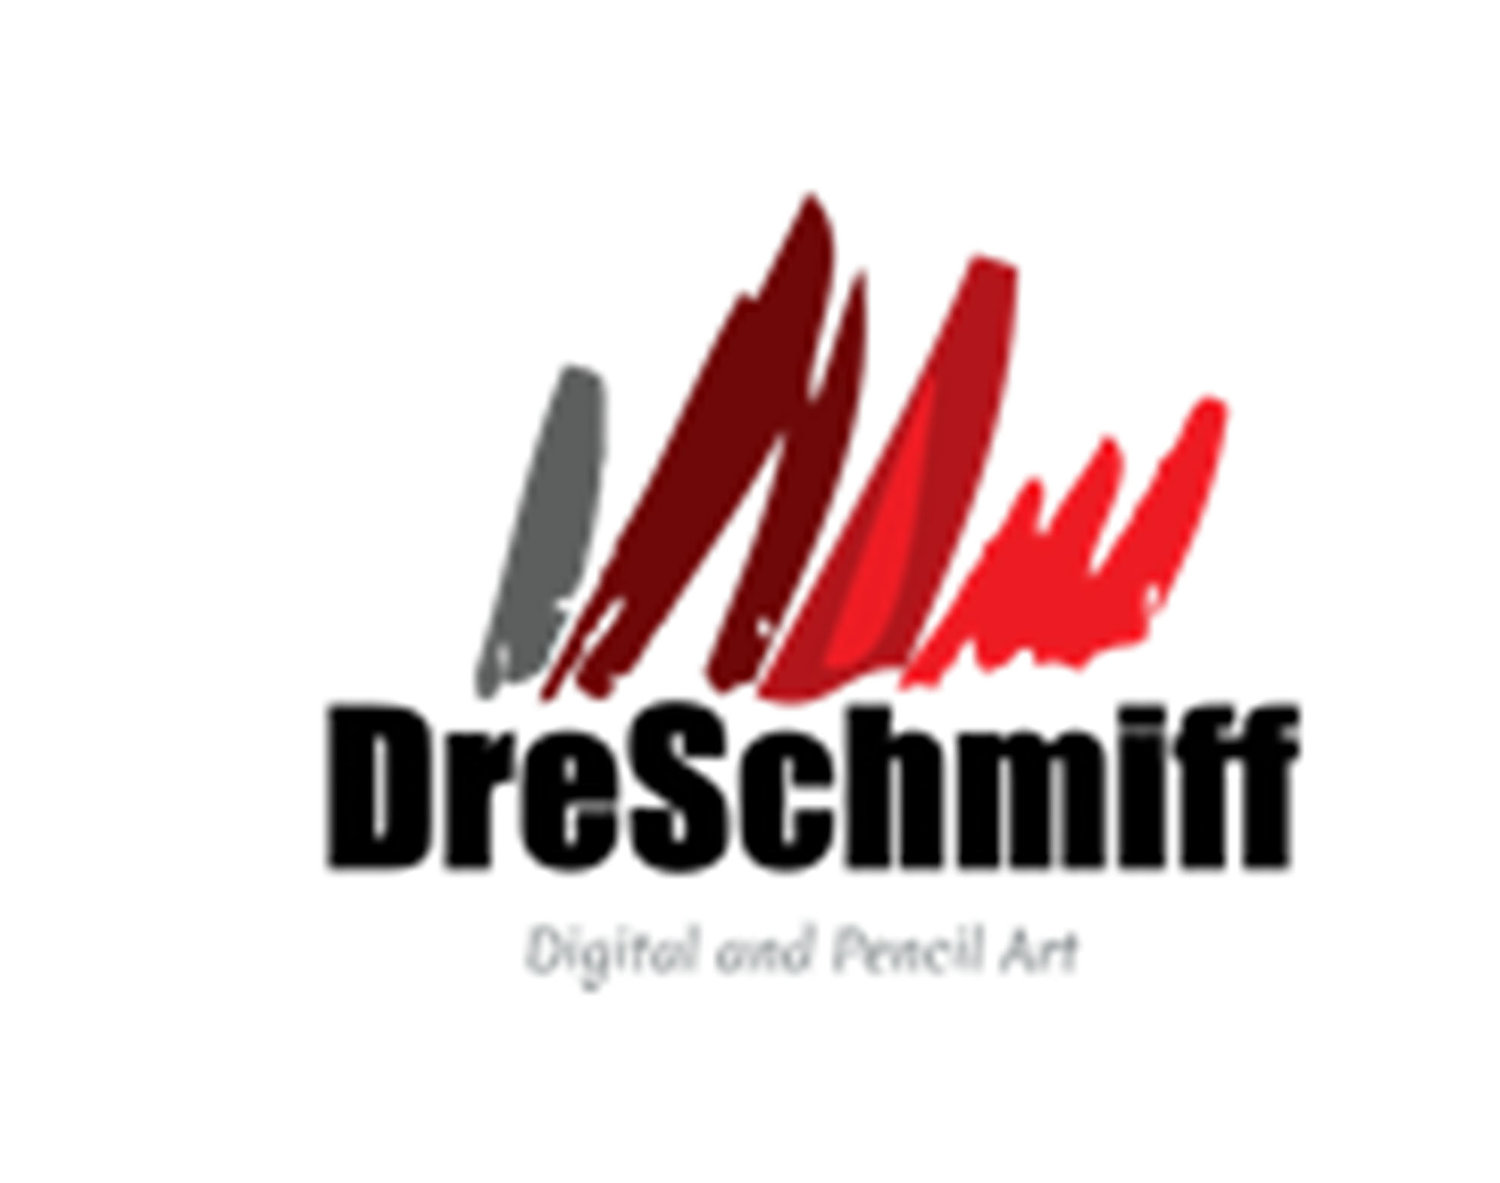 DreSchmiff: Digital and Pencil Art